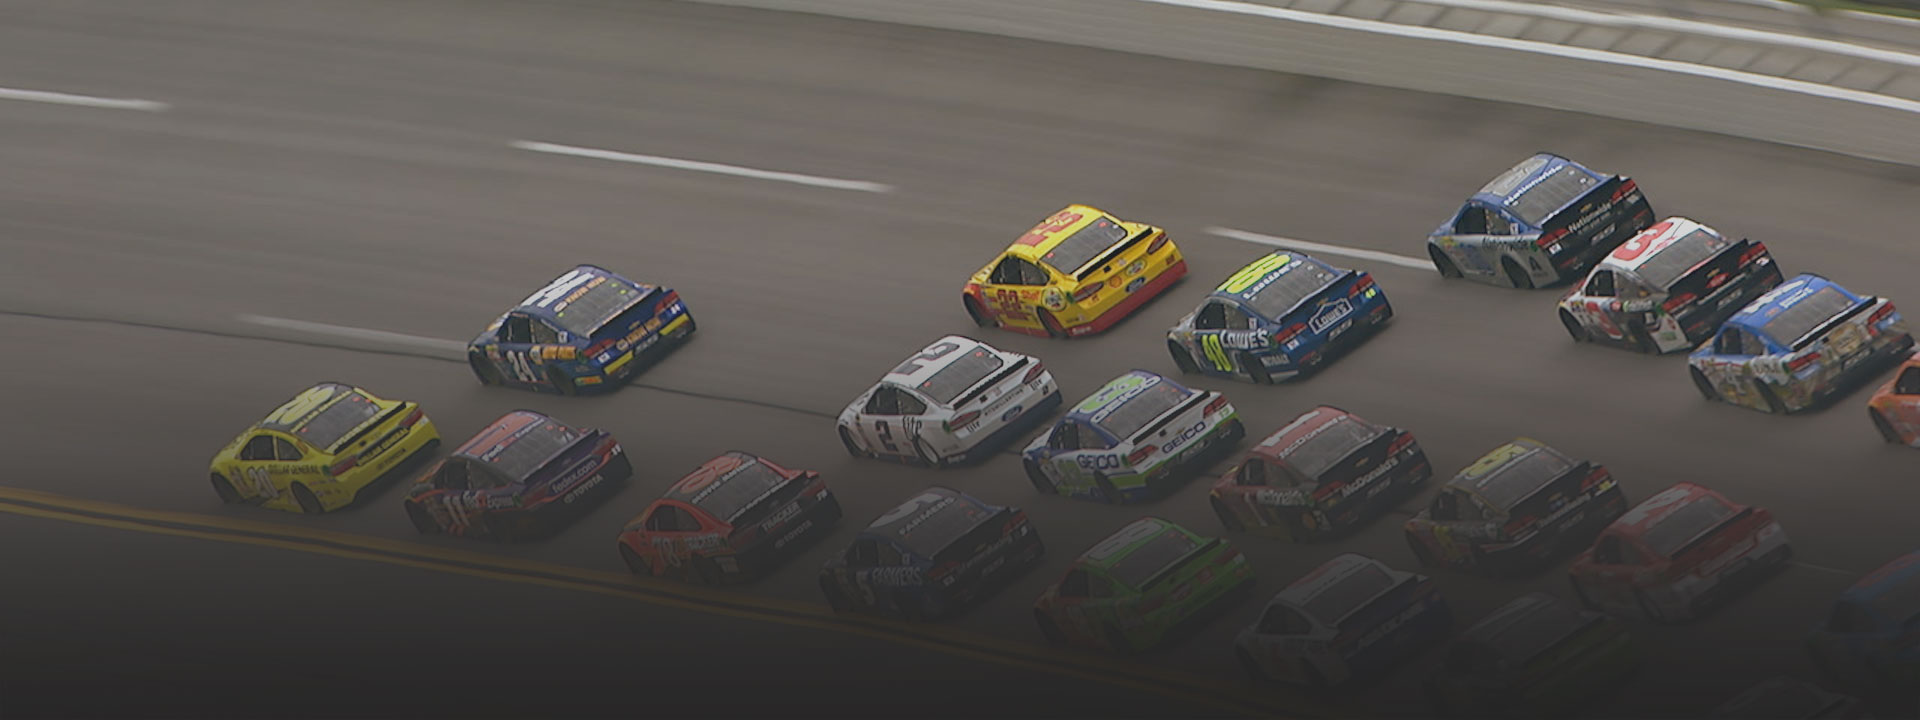 Cars racing, see how we're helping NASCAR